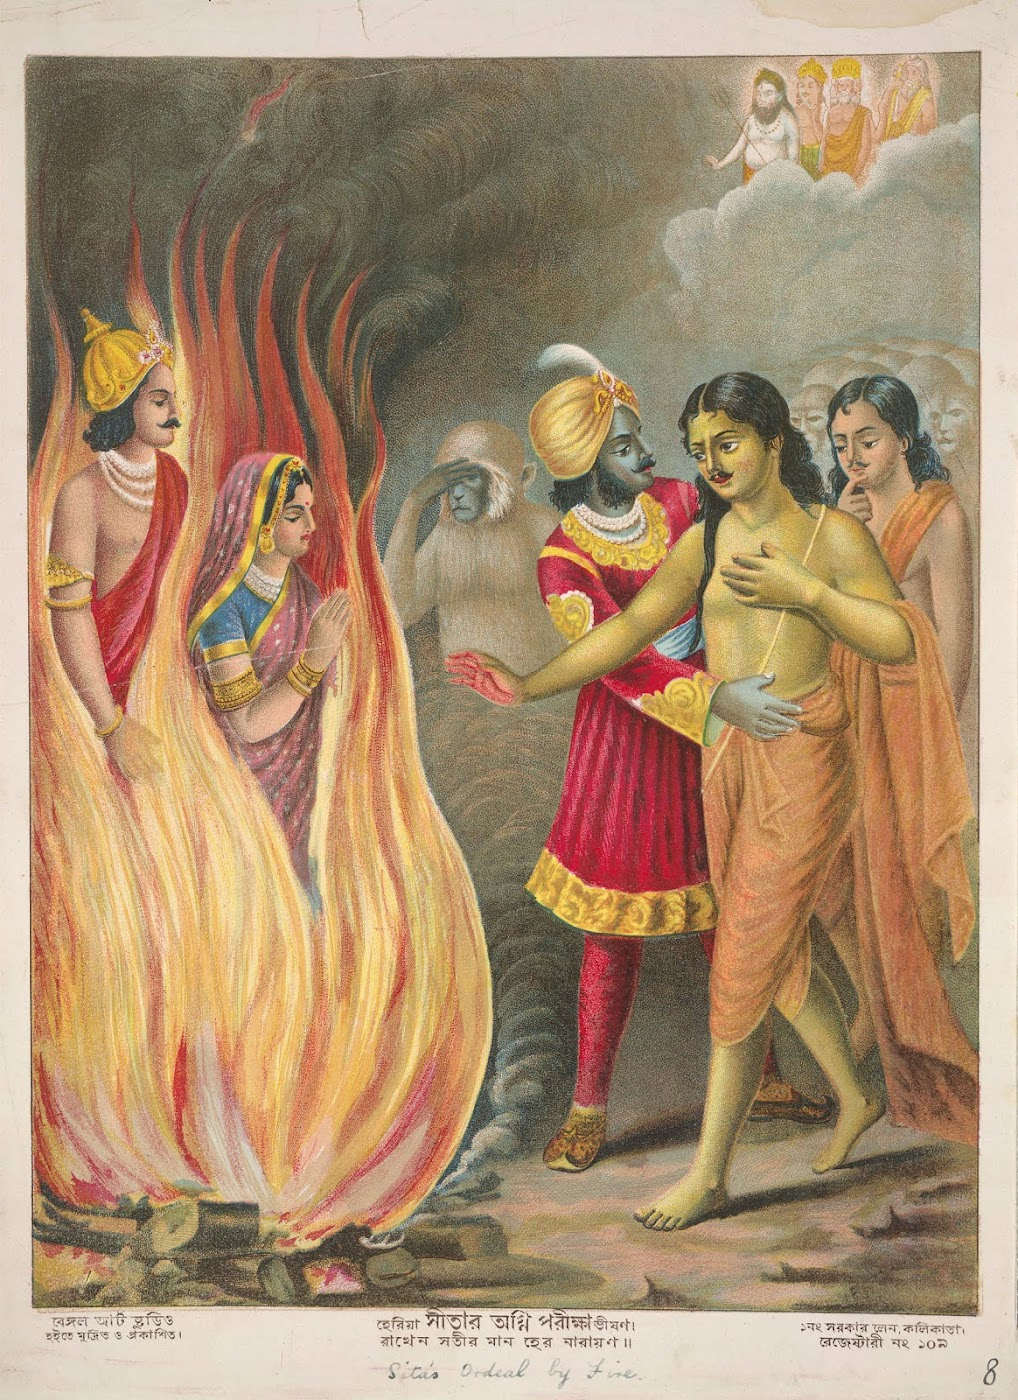 Sita's Ordeal by Fire. Rama is Seen being Restrained, - Lithograph Print, Bengal Art Studio, Circa 1895